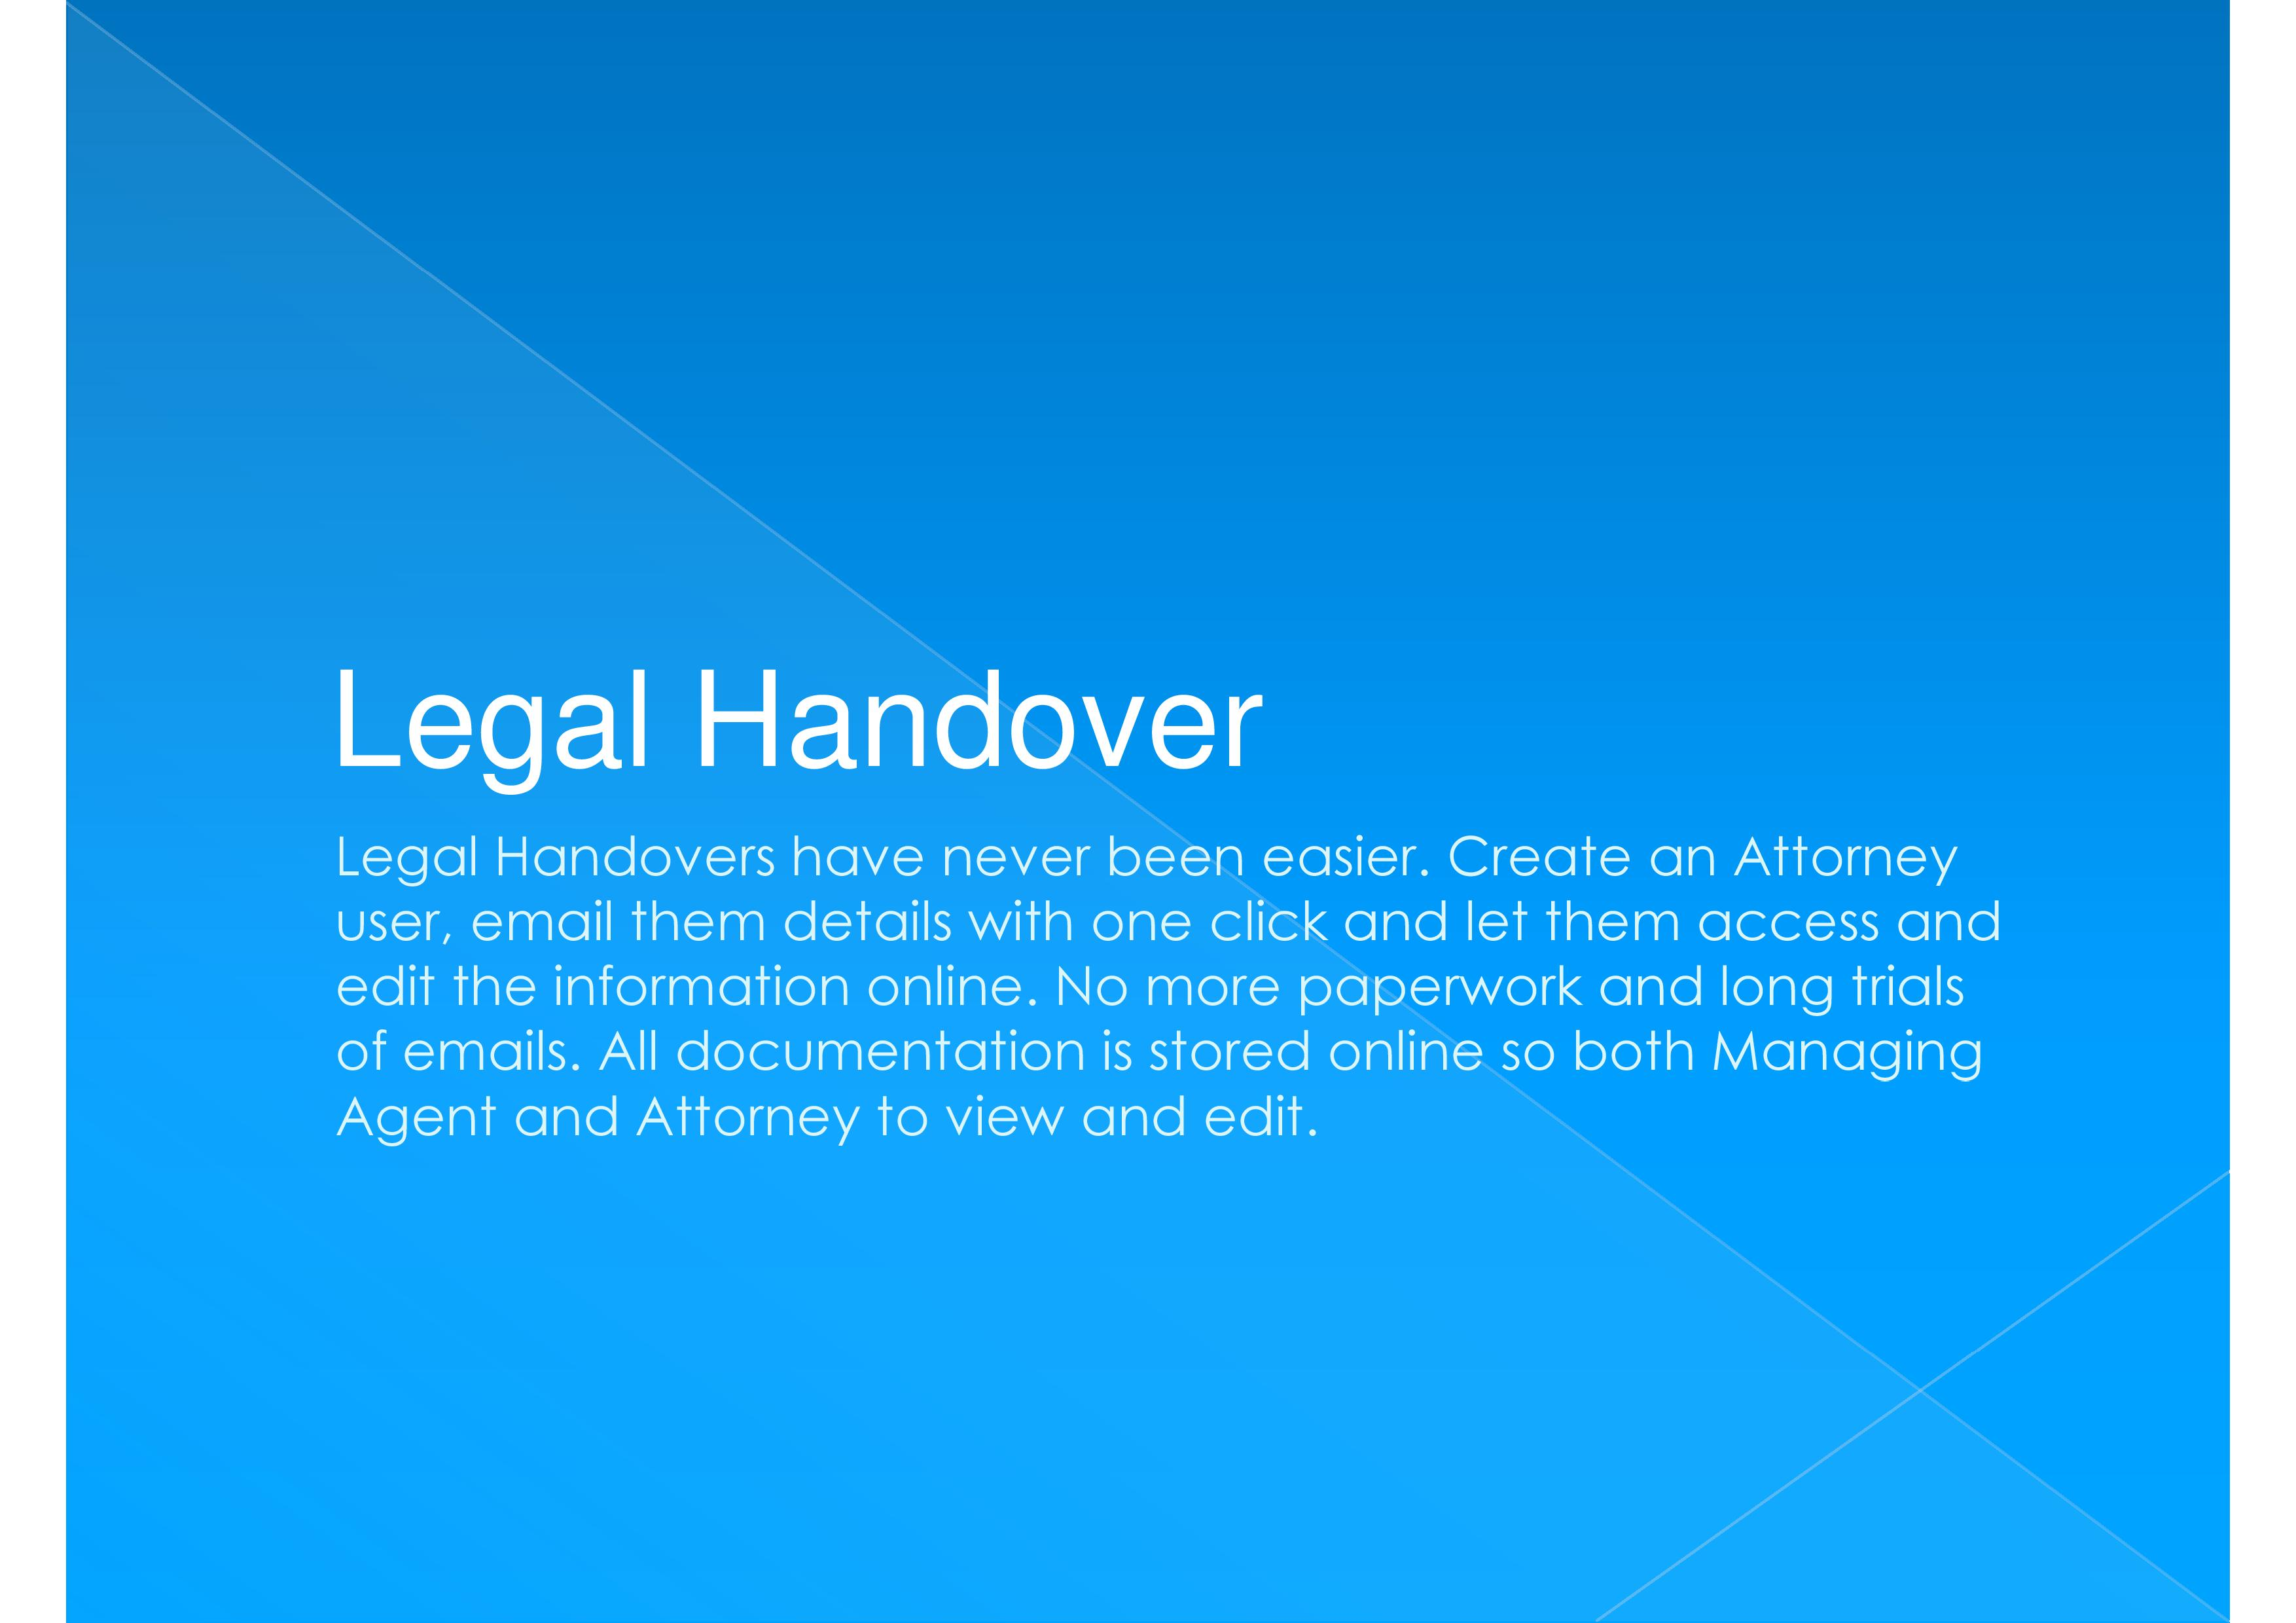 Make Legal Handovers Easy using BCMTrac